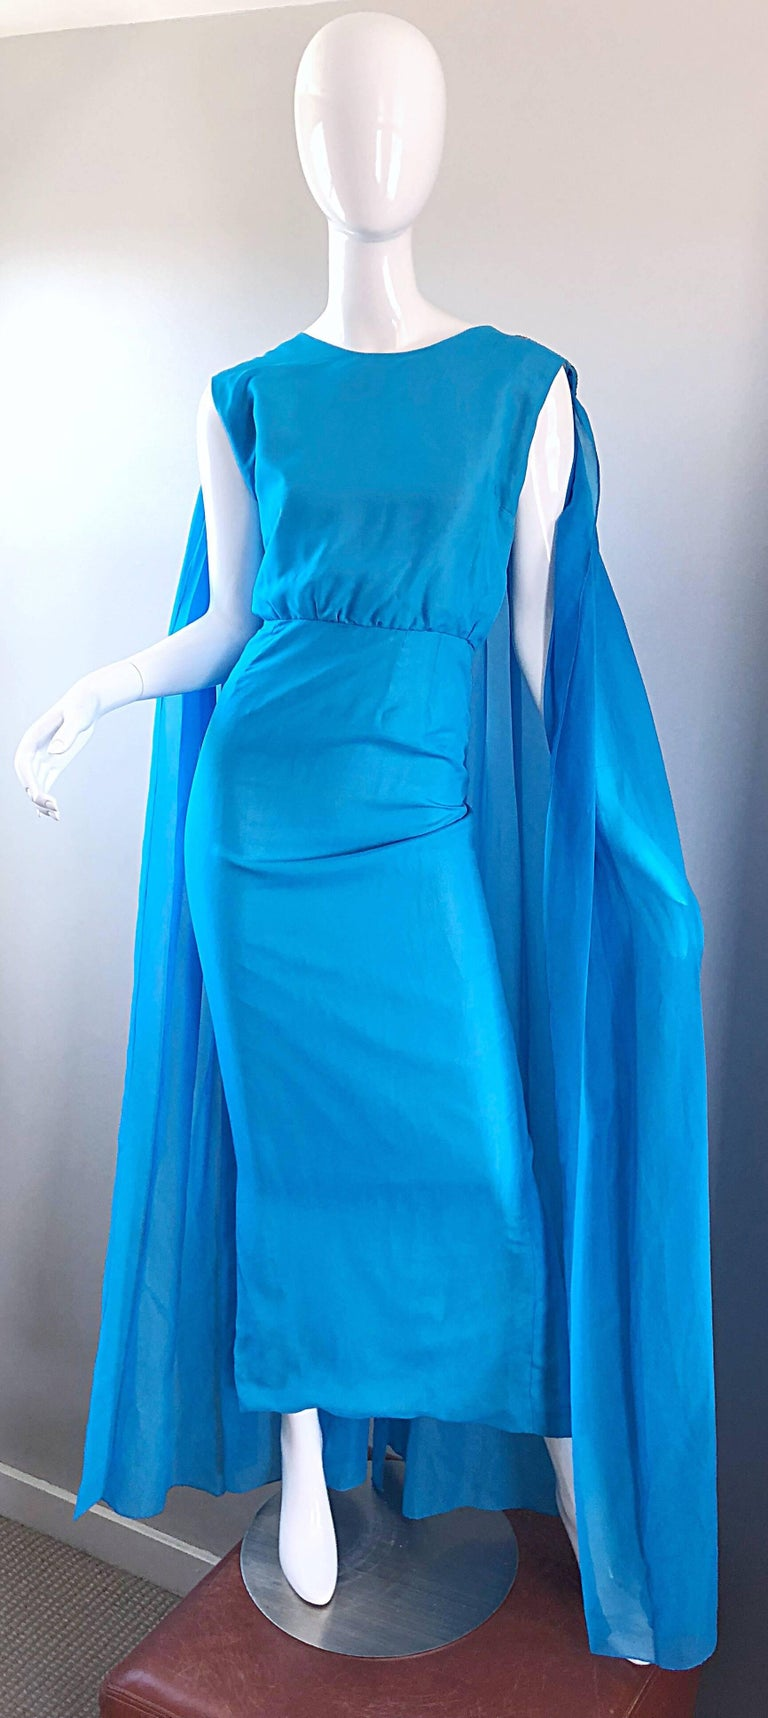 Incredible 1960s Turquoise Blue Chiffon Rhinestone Encrusted Vintage Cape Gown For Sale 11